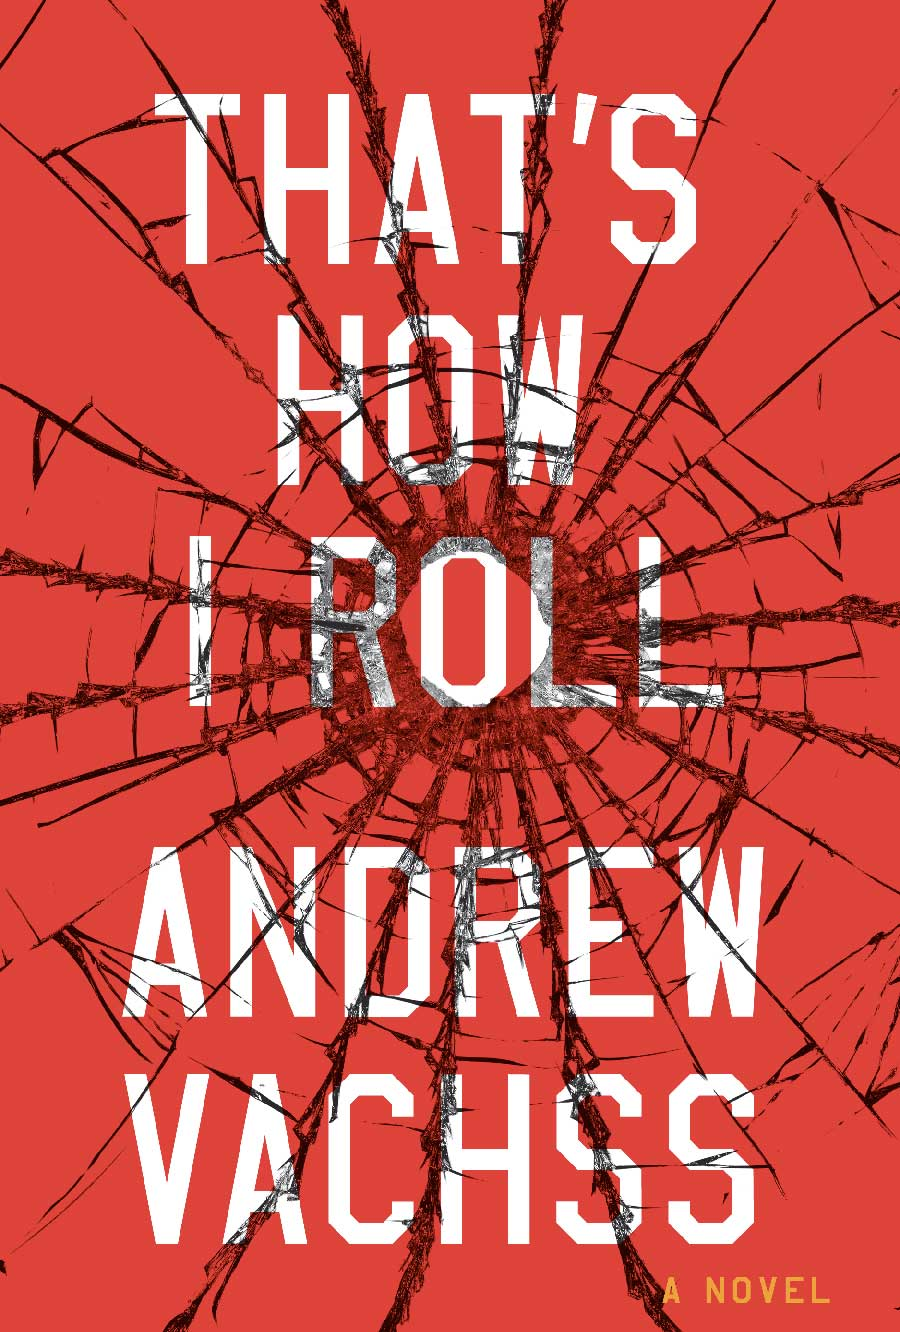 That's How I Roll, a novel by Andrew Vachss